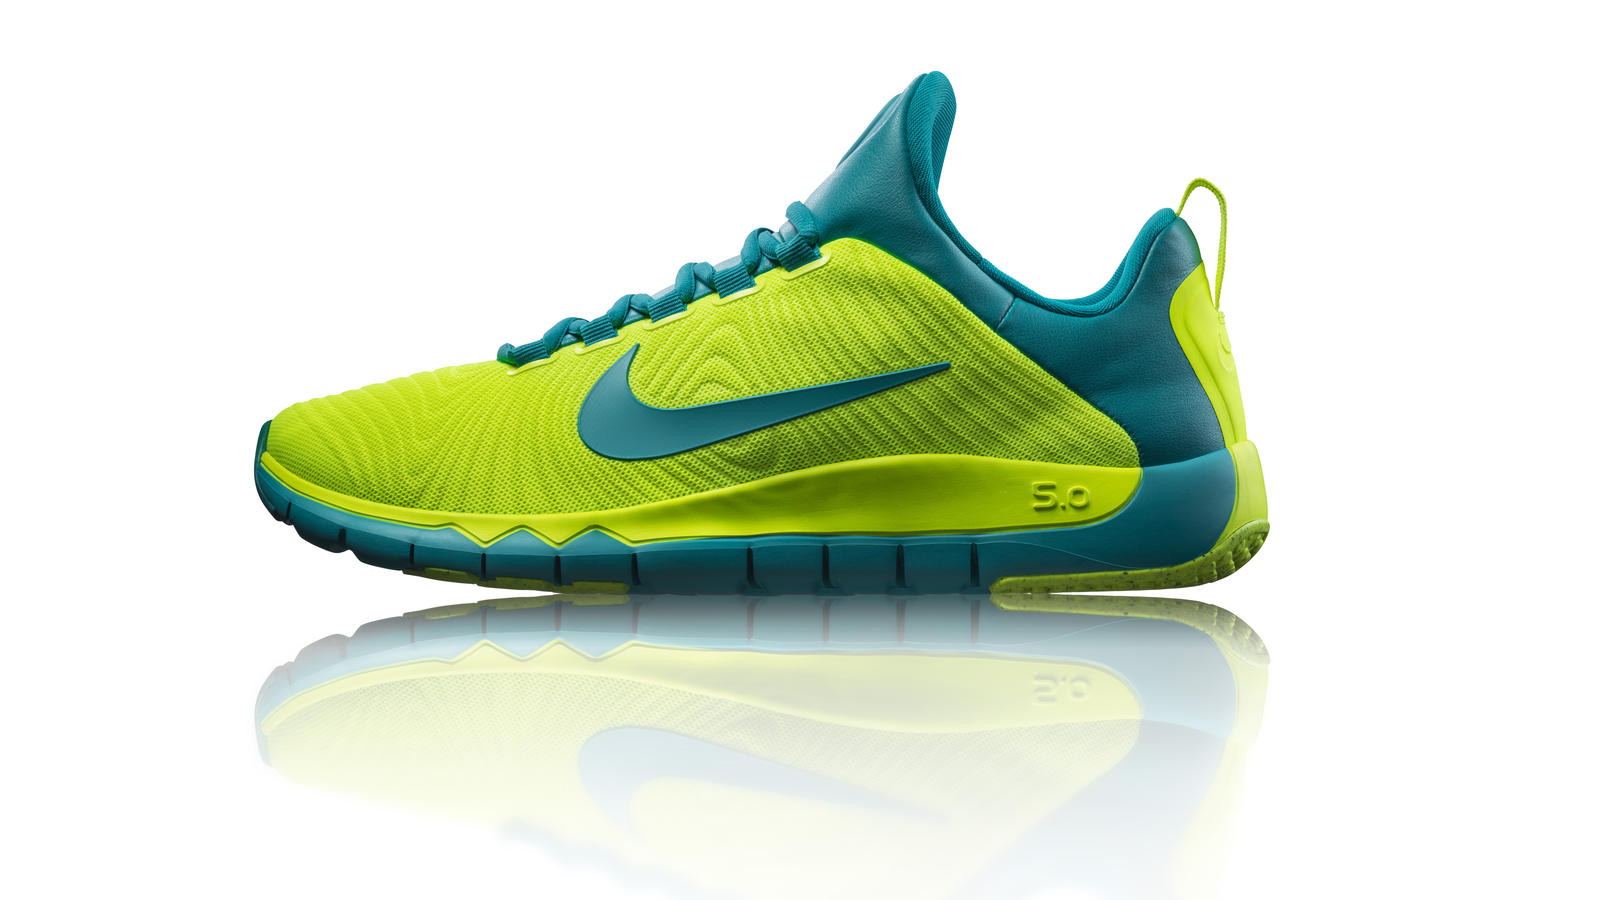 online store aa096 21219 Introducing the new Nike Free Trainer 5.0 - Nike News